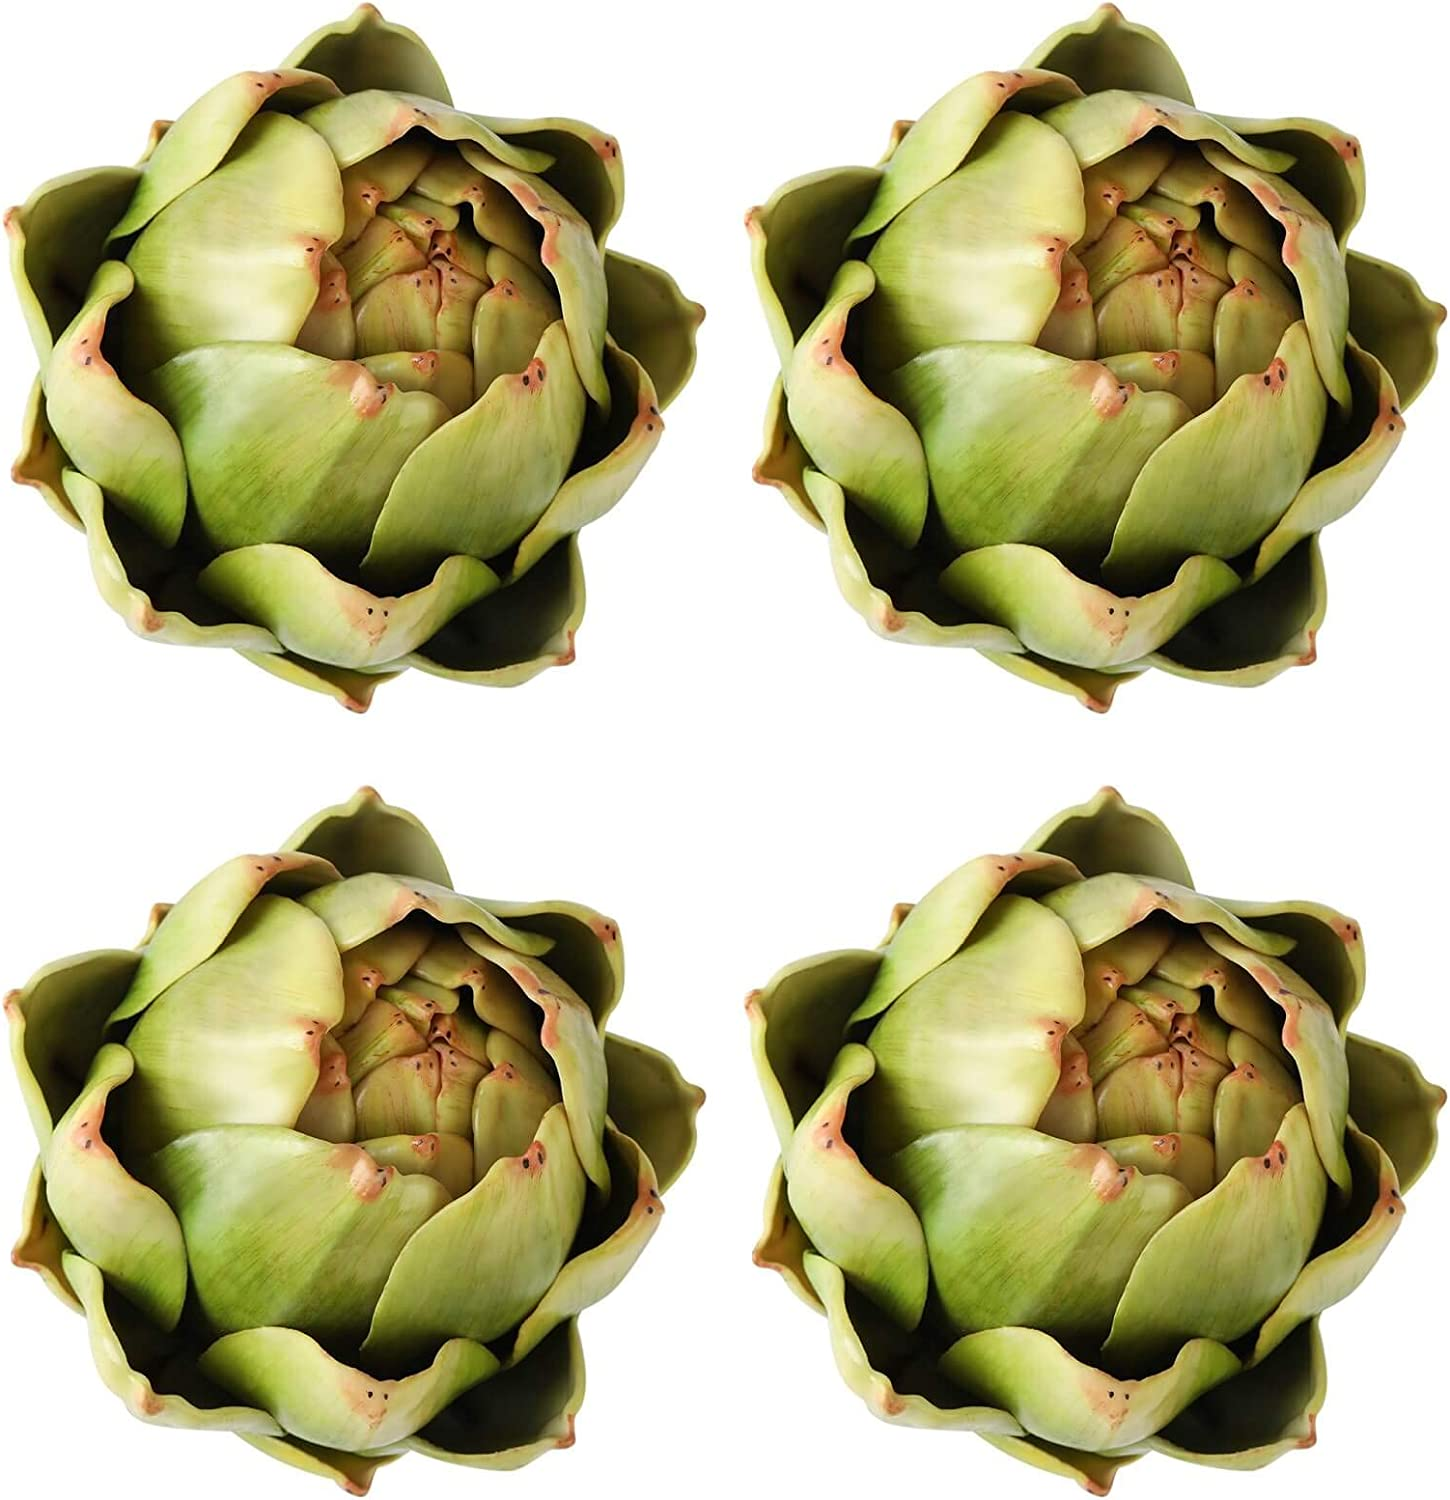 [4-Pack] Large Green Faux Artichokes - Artificial Vegetables and Fake Fruits for Kitchen Decorations (Green)